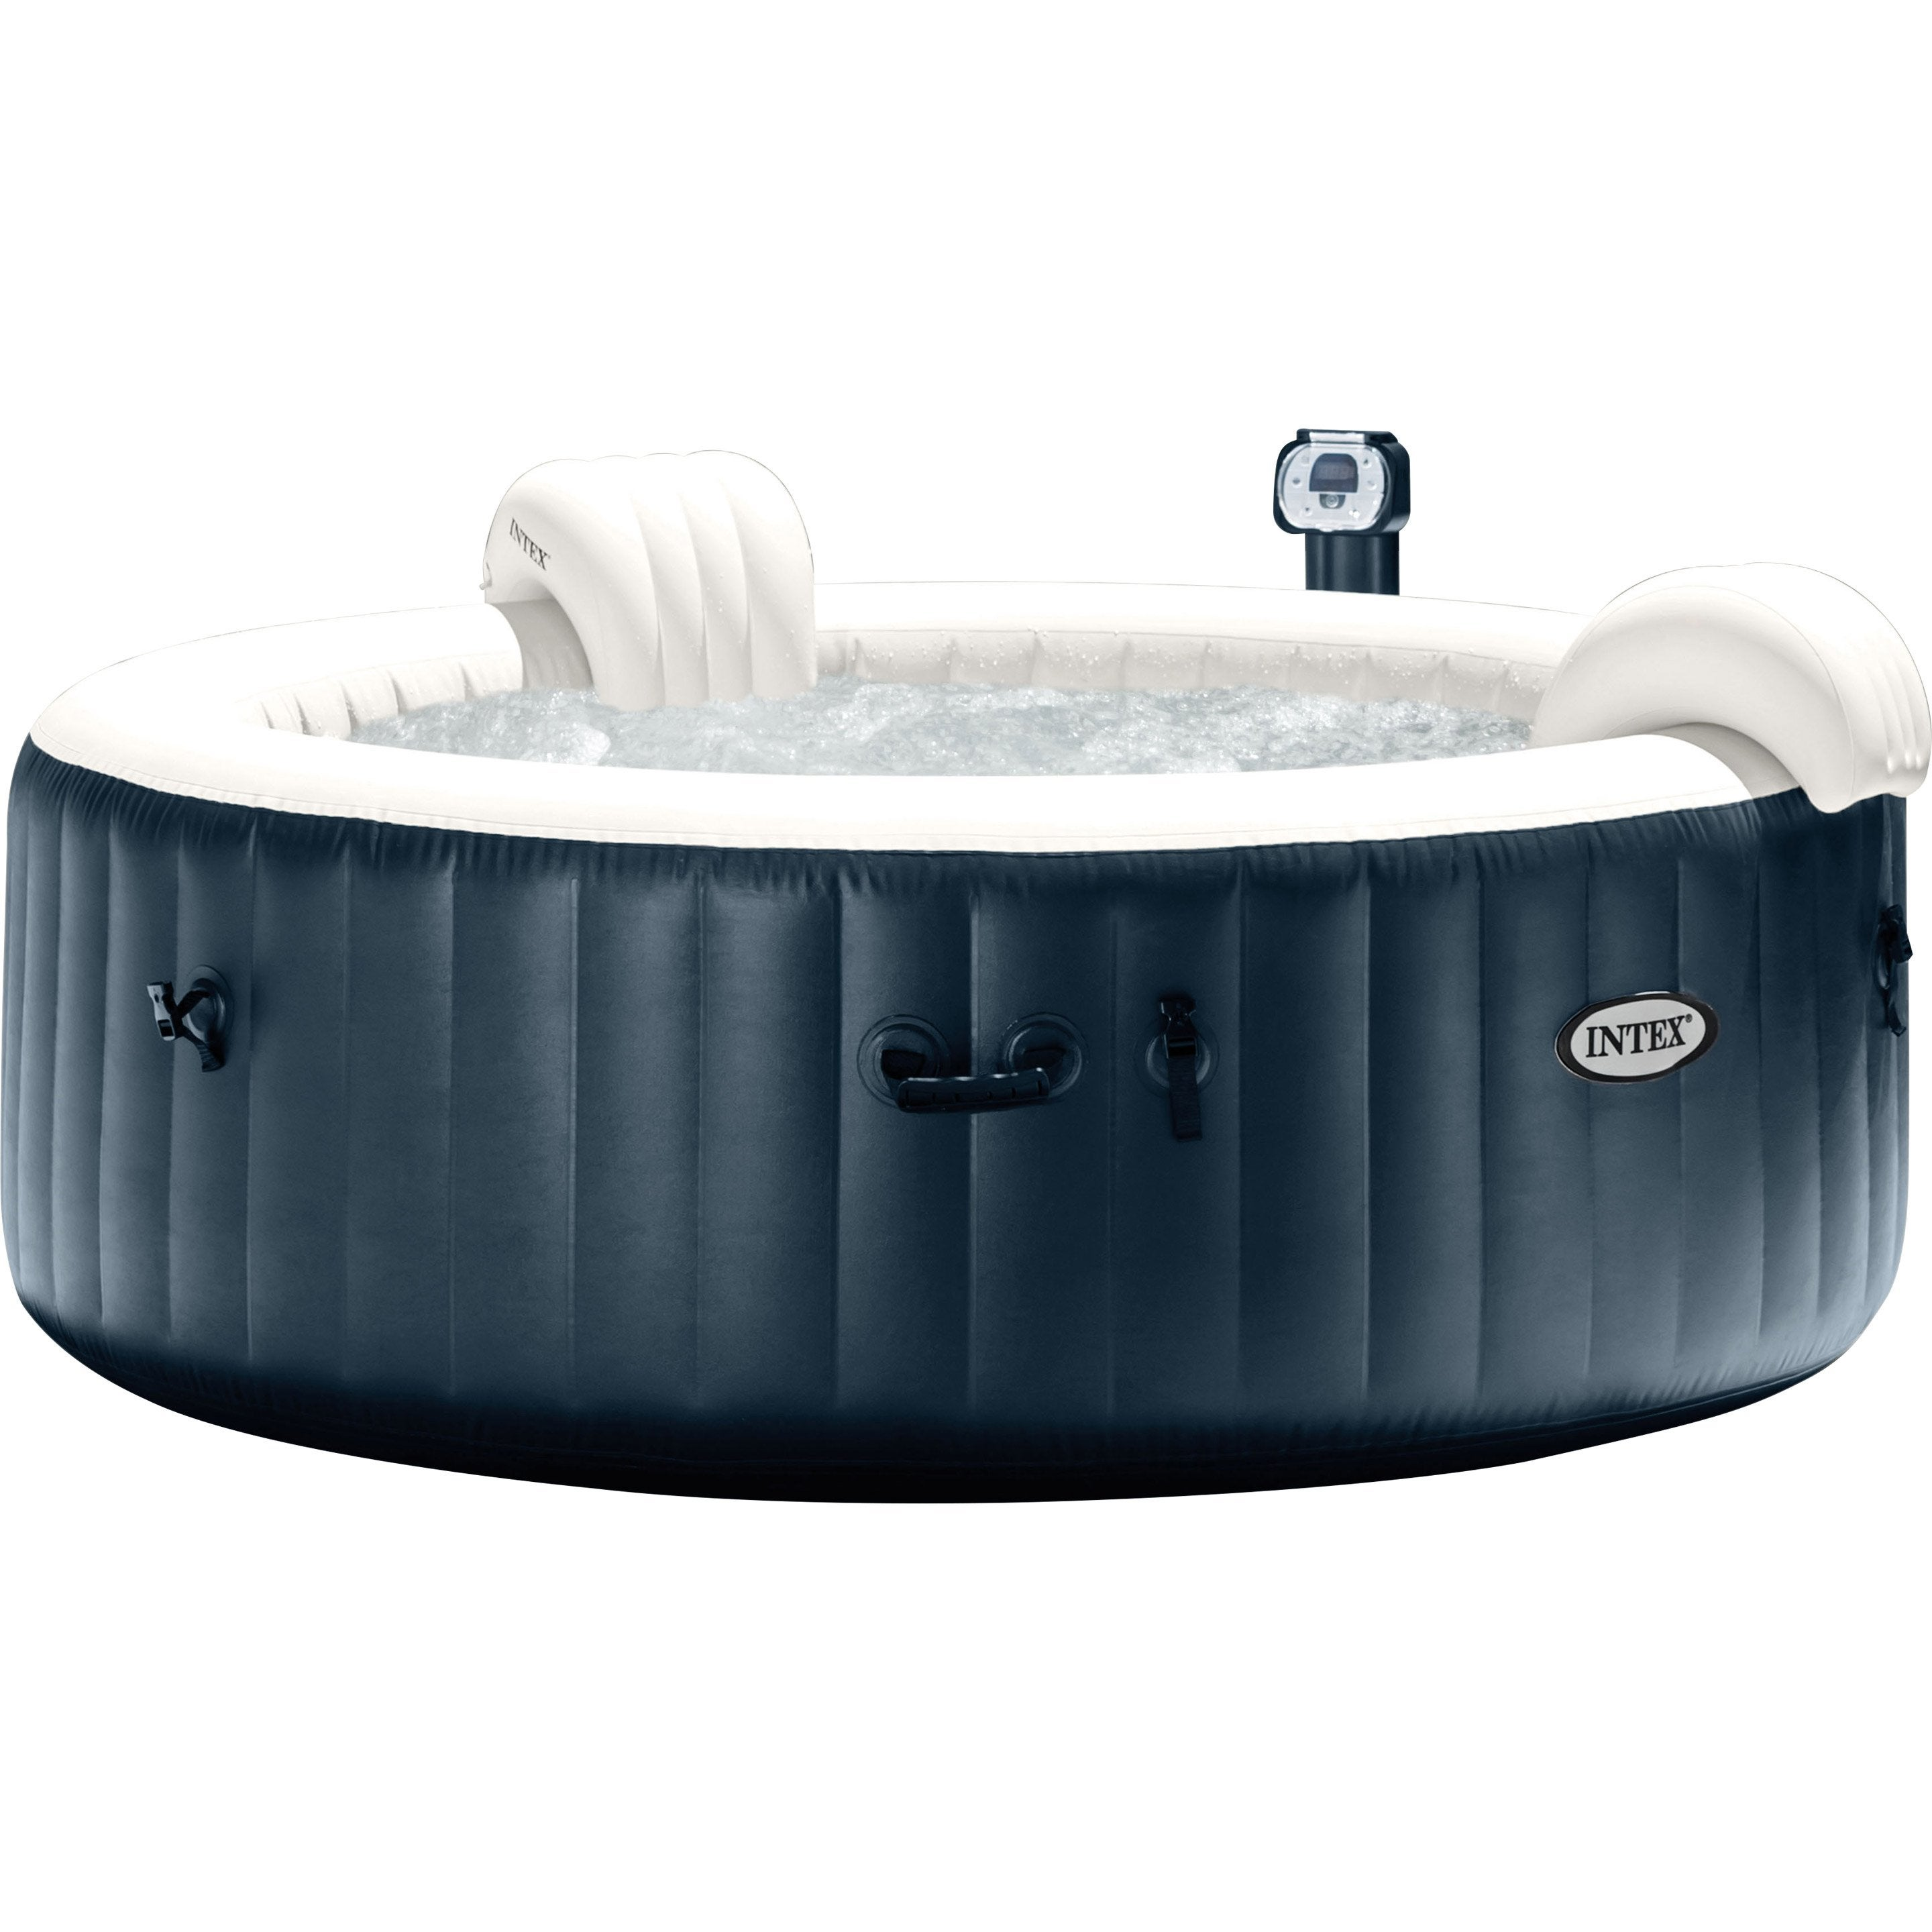 Installer Spa Gonflable Exterieur spa gonflable intex pure spa bulles led rond, 4 places assises